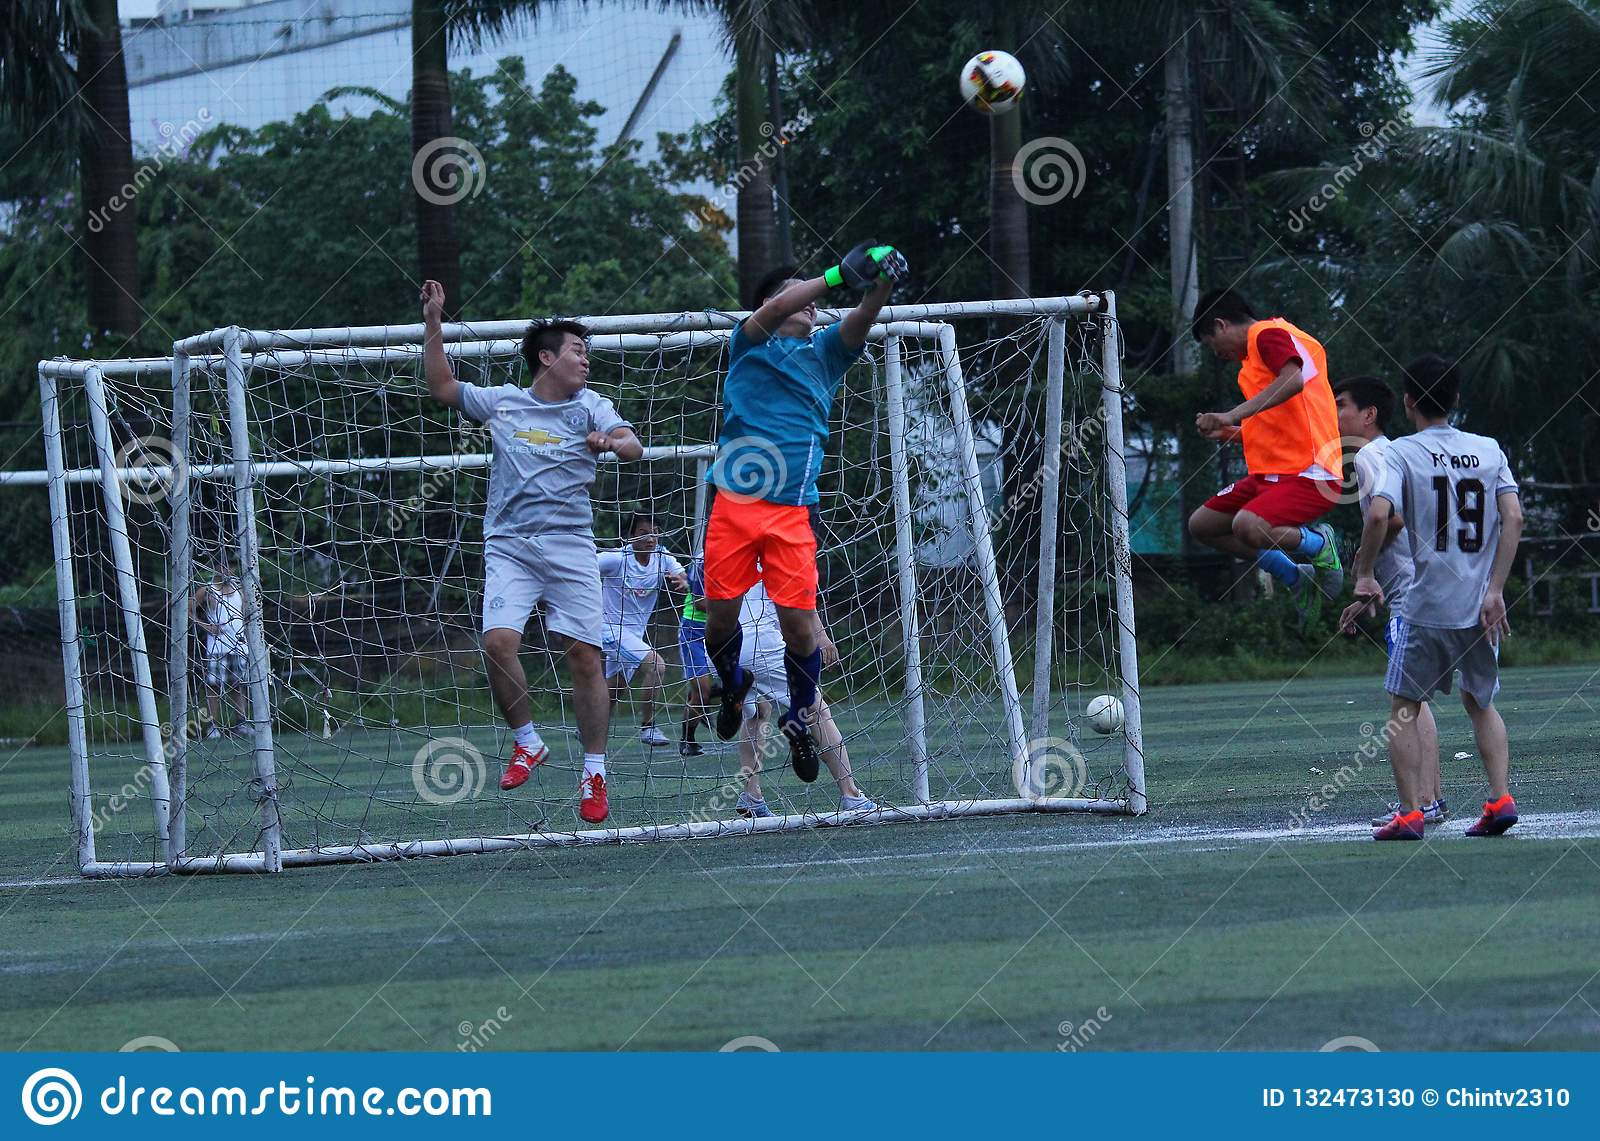 Football match - goal keeper face to face with the ball at Hanoi, Viet nam - July, 29,2018